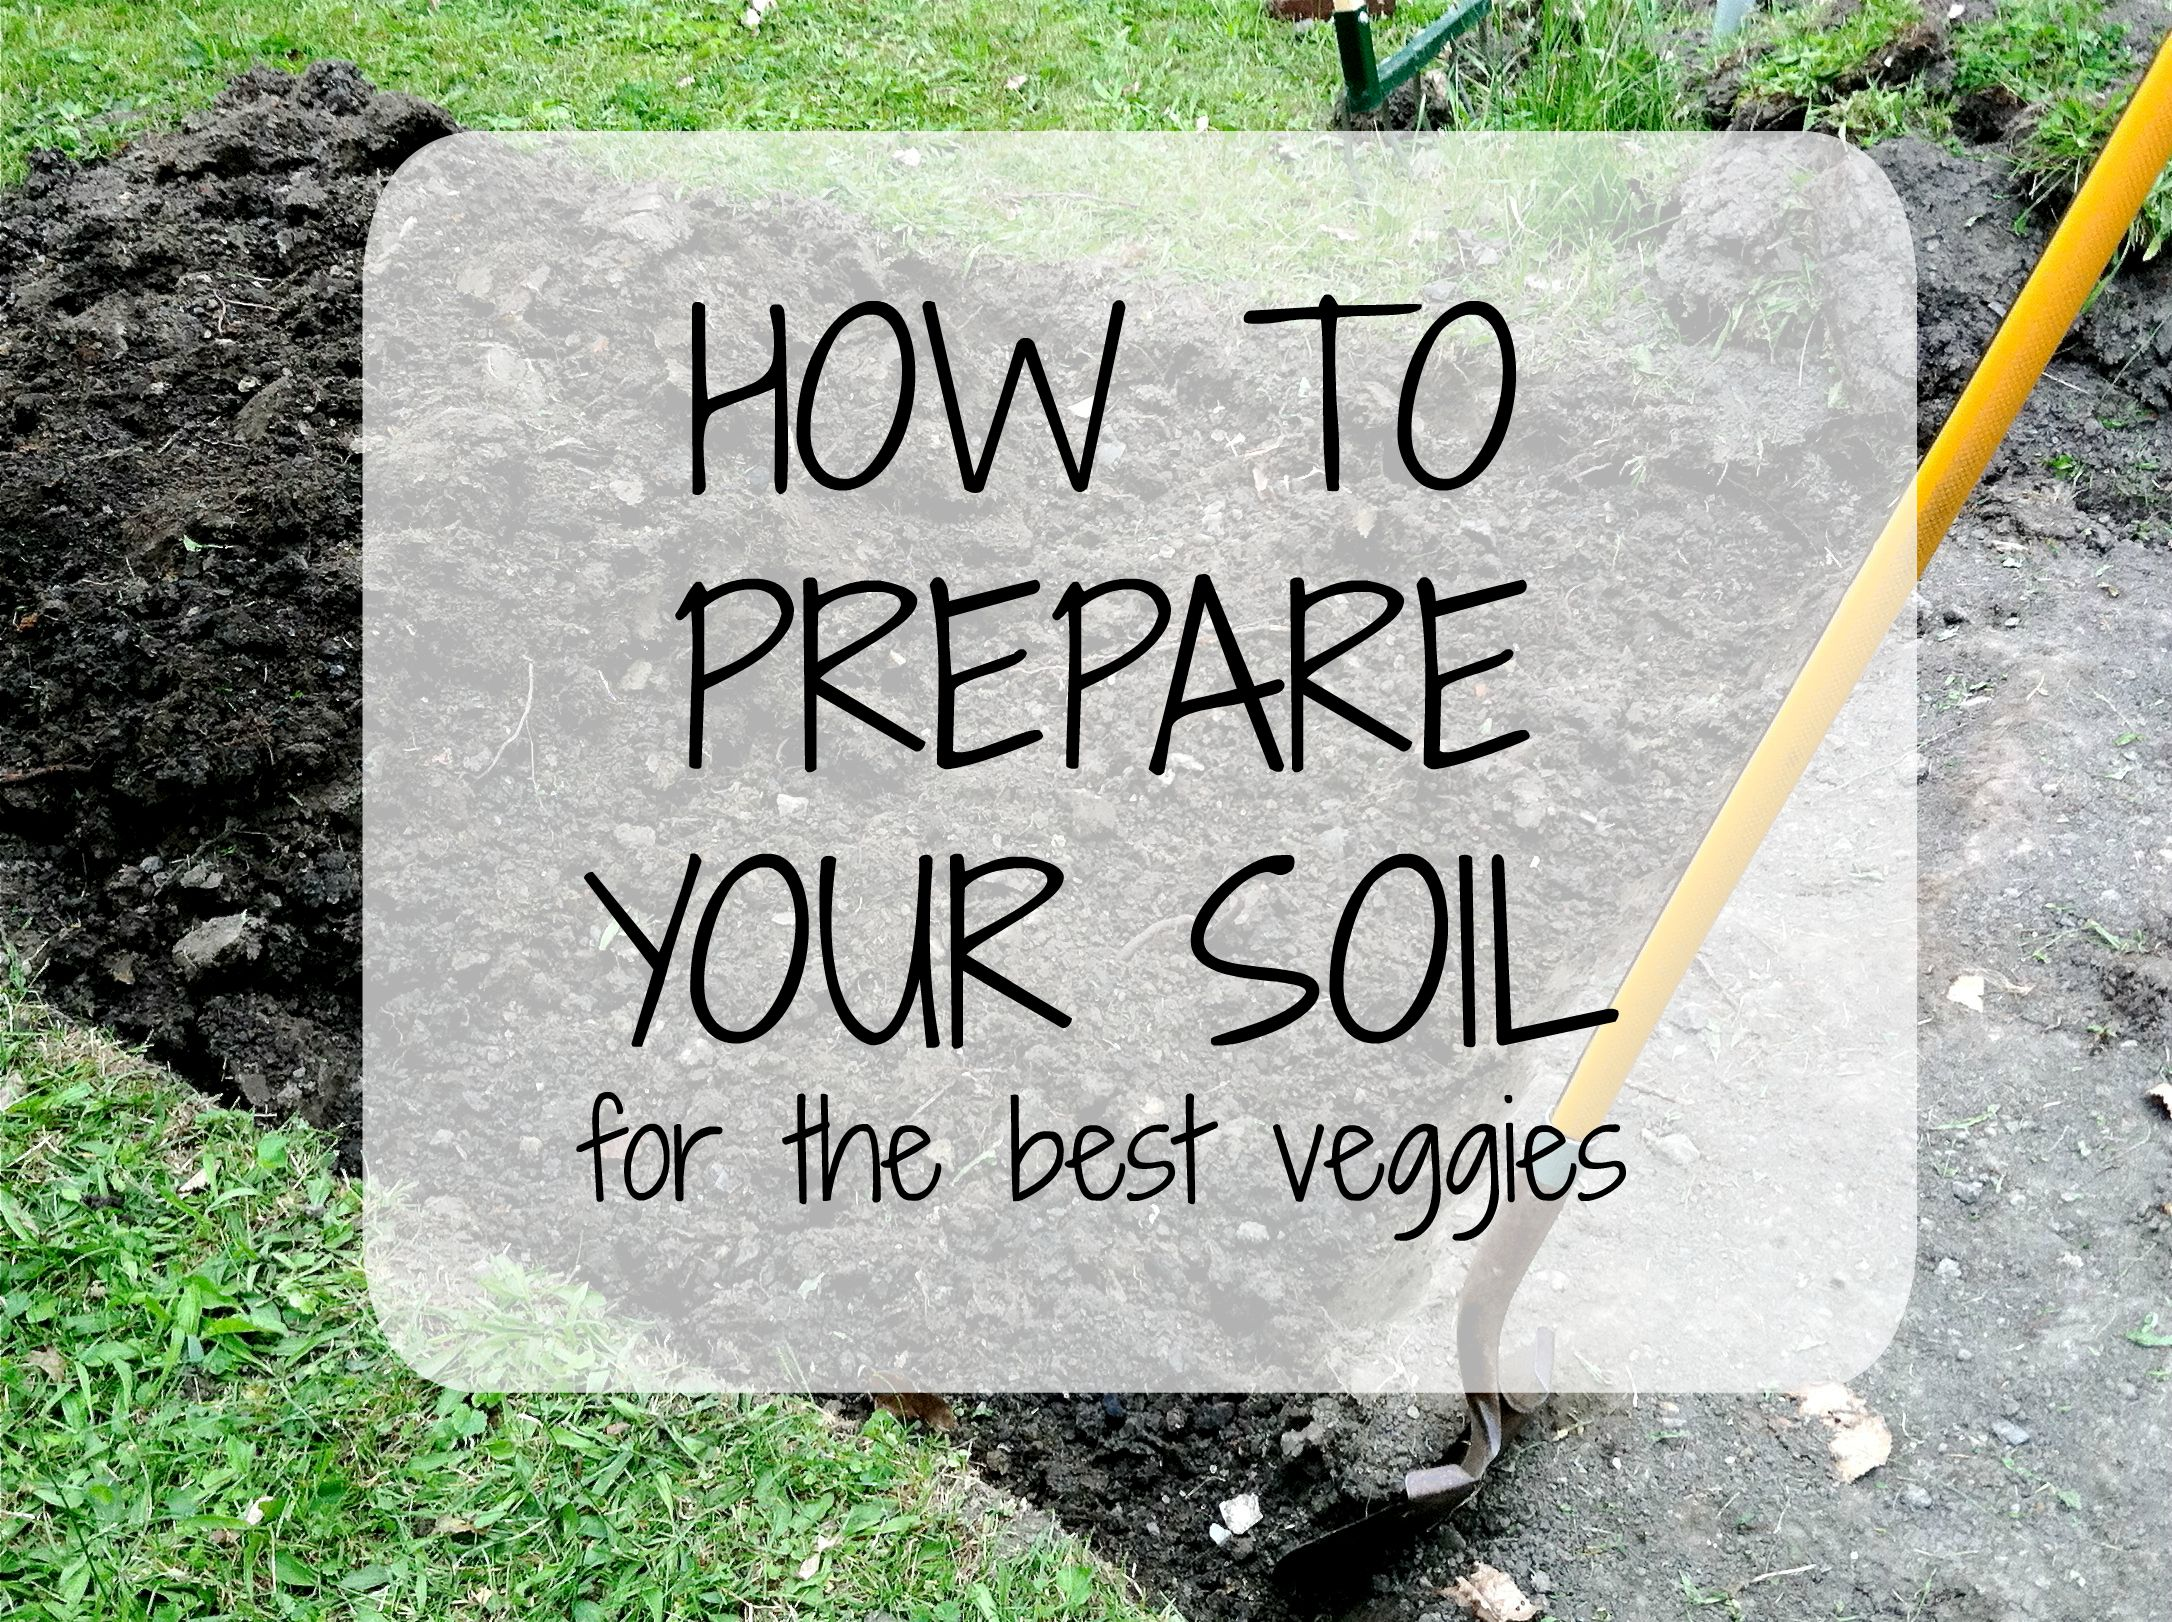 Beau How To Prepare Your Soil For The Best Veggies